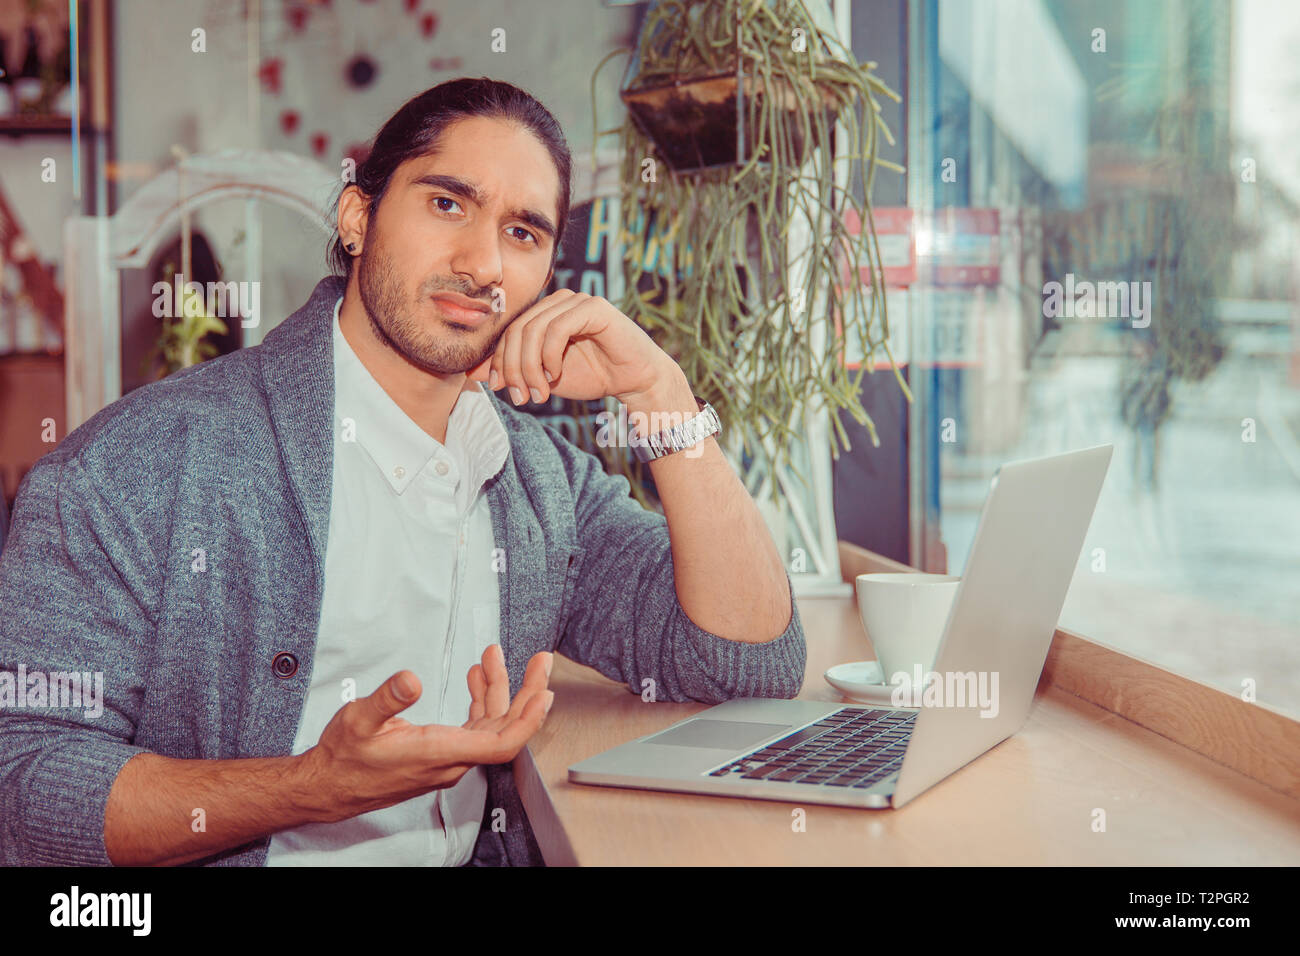 Man looking at you camera frustrated hand gesture in front of the computer. Closeup portrait of a handsome guy wearing white shirt, gray blouse sittin - Stock Image